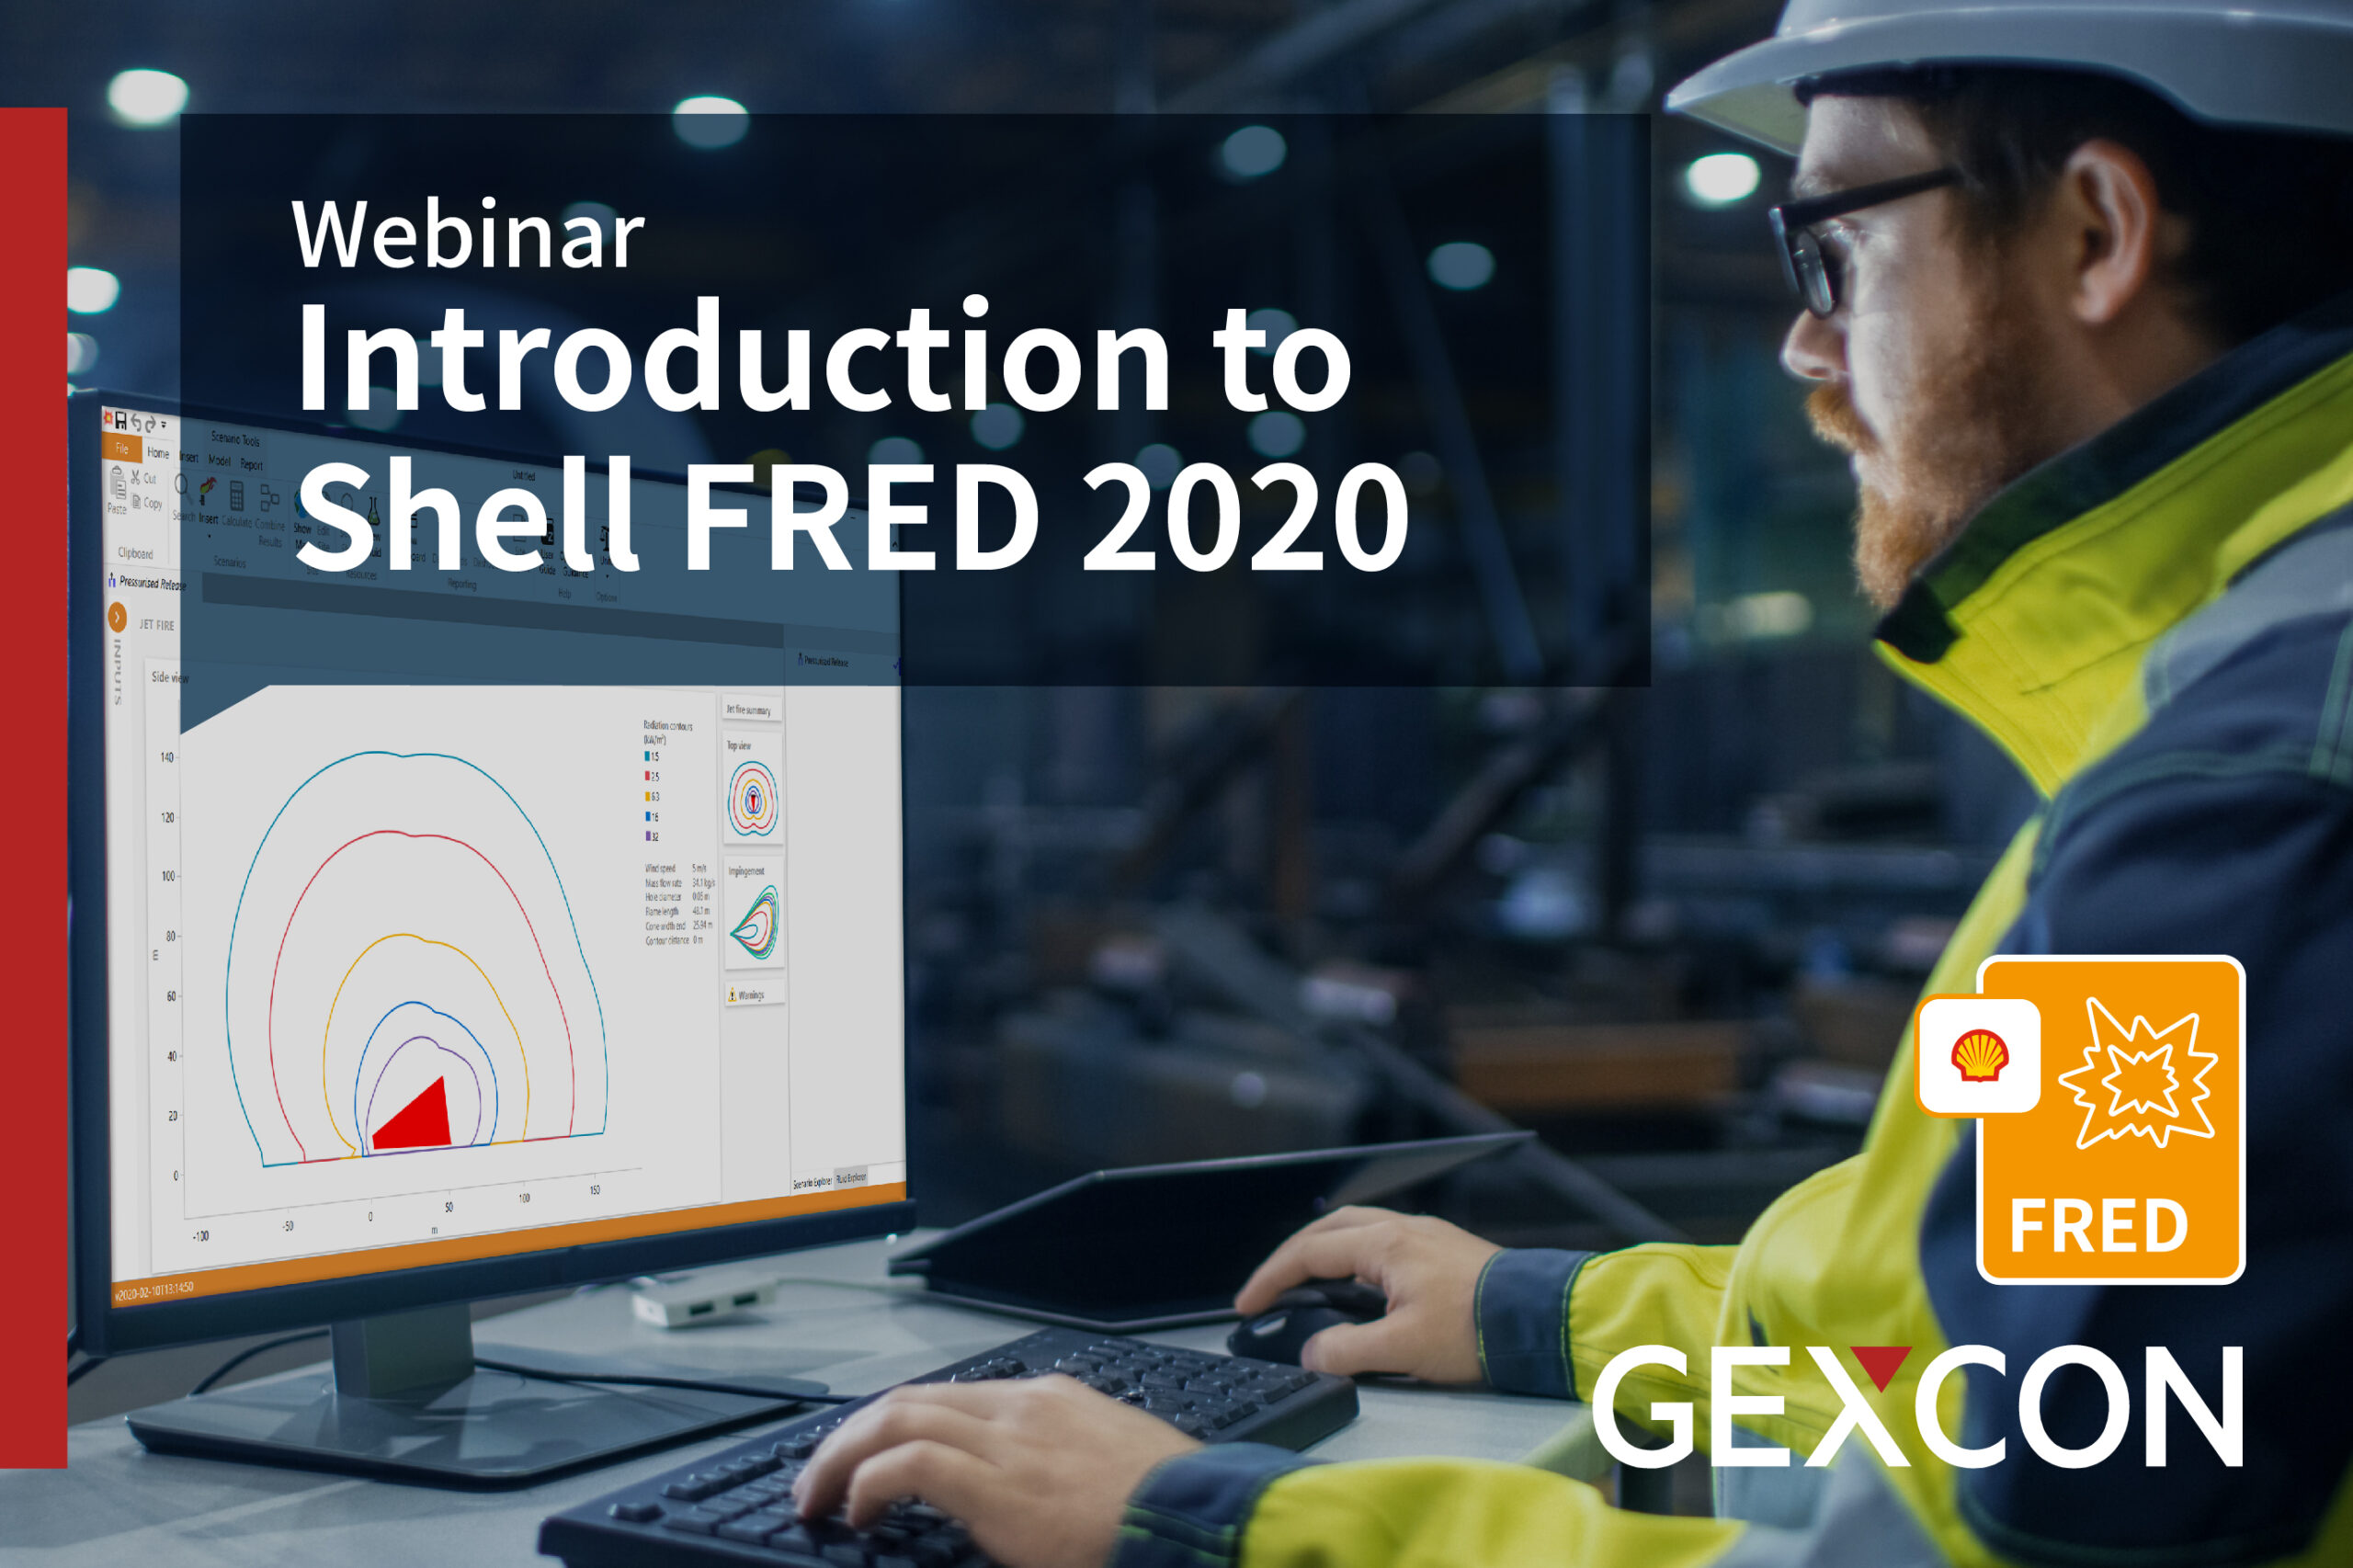 Webinar - Introduction to Shell FRED 2020